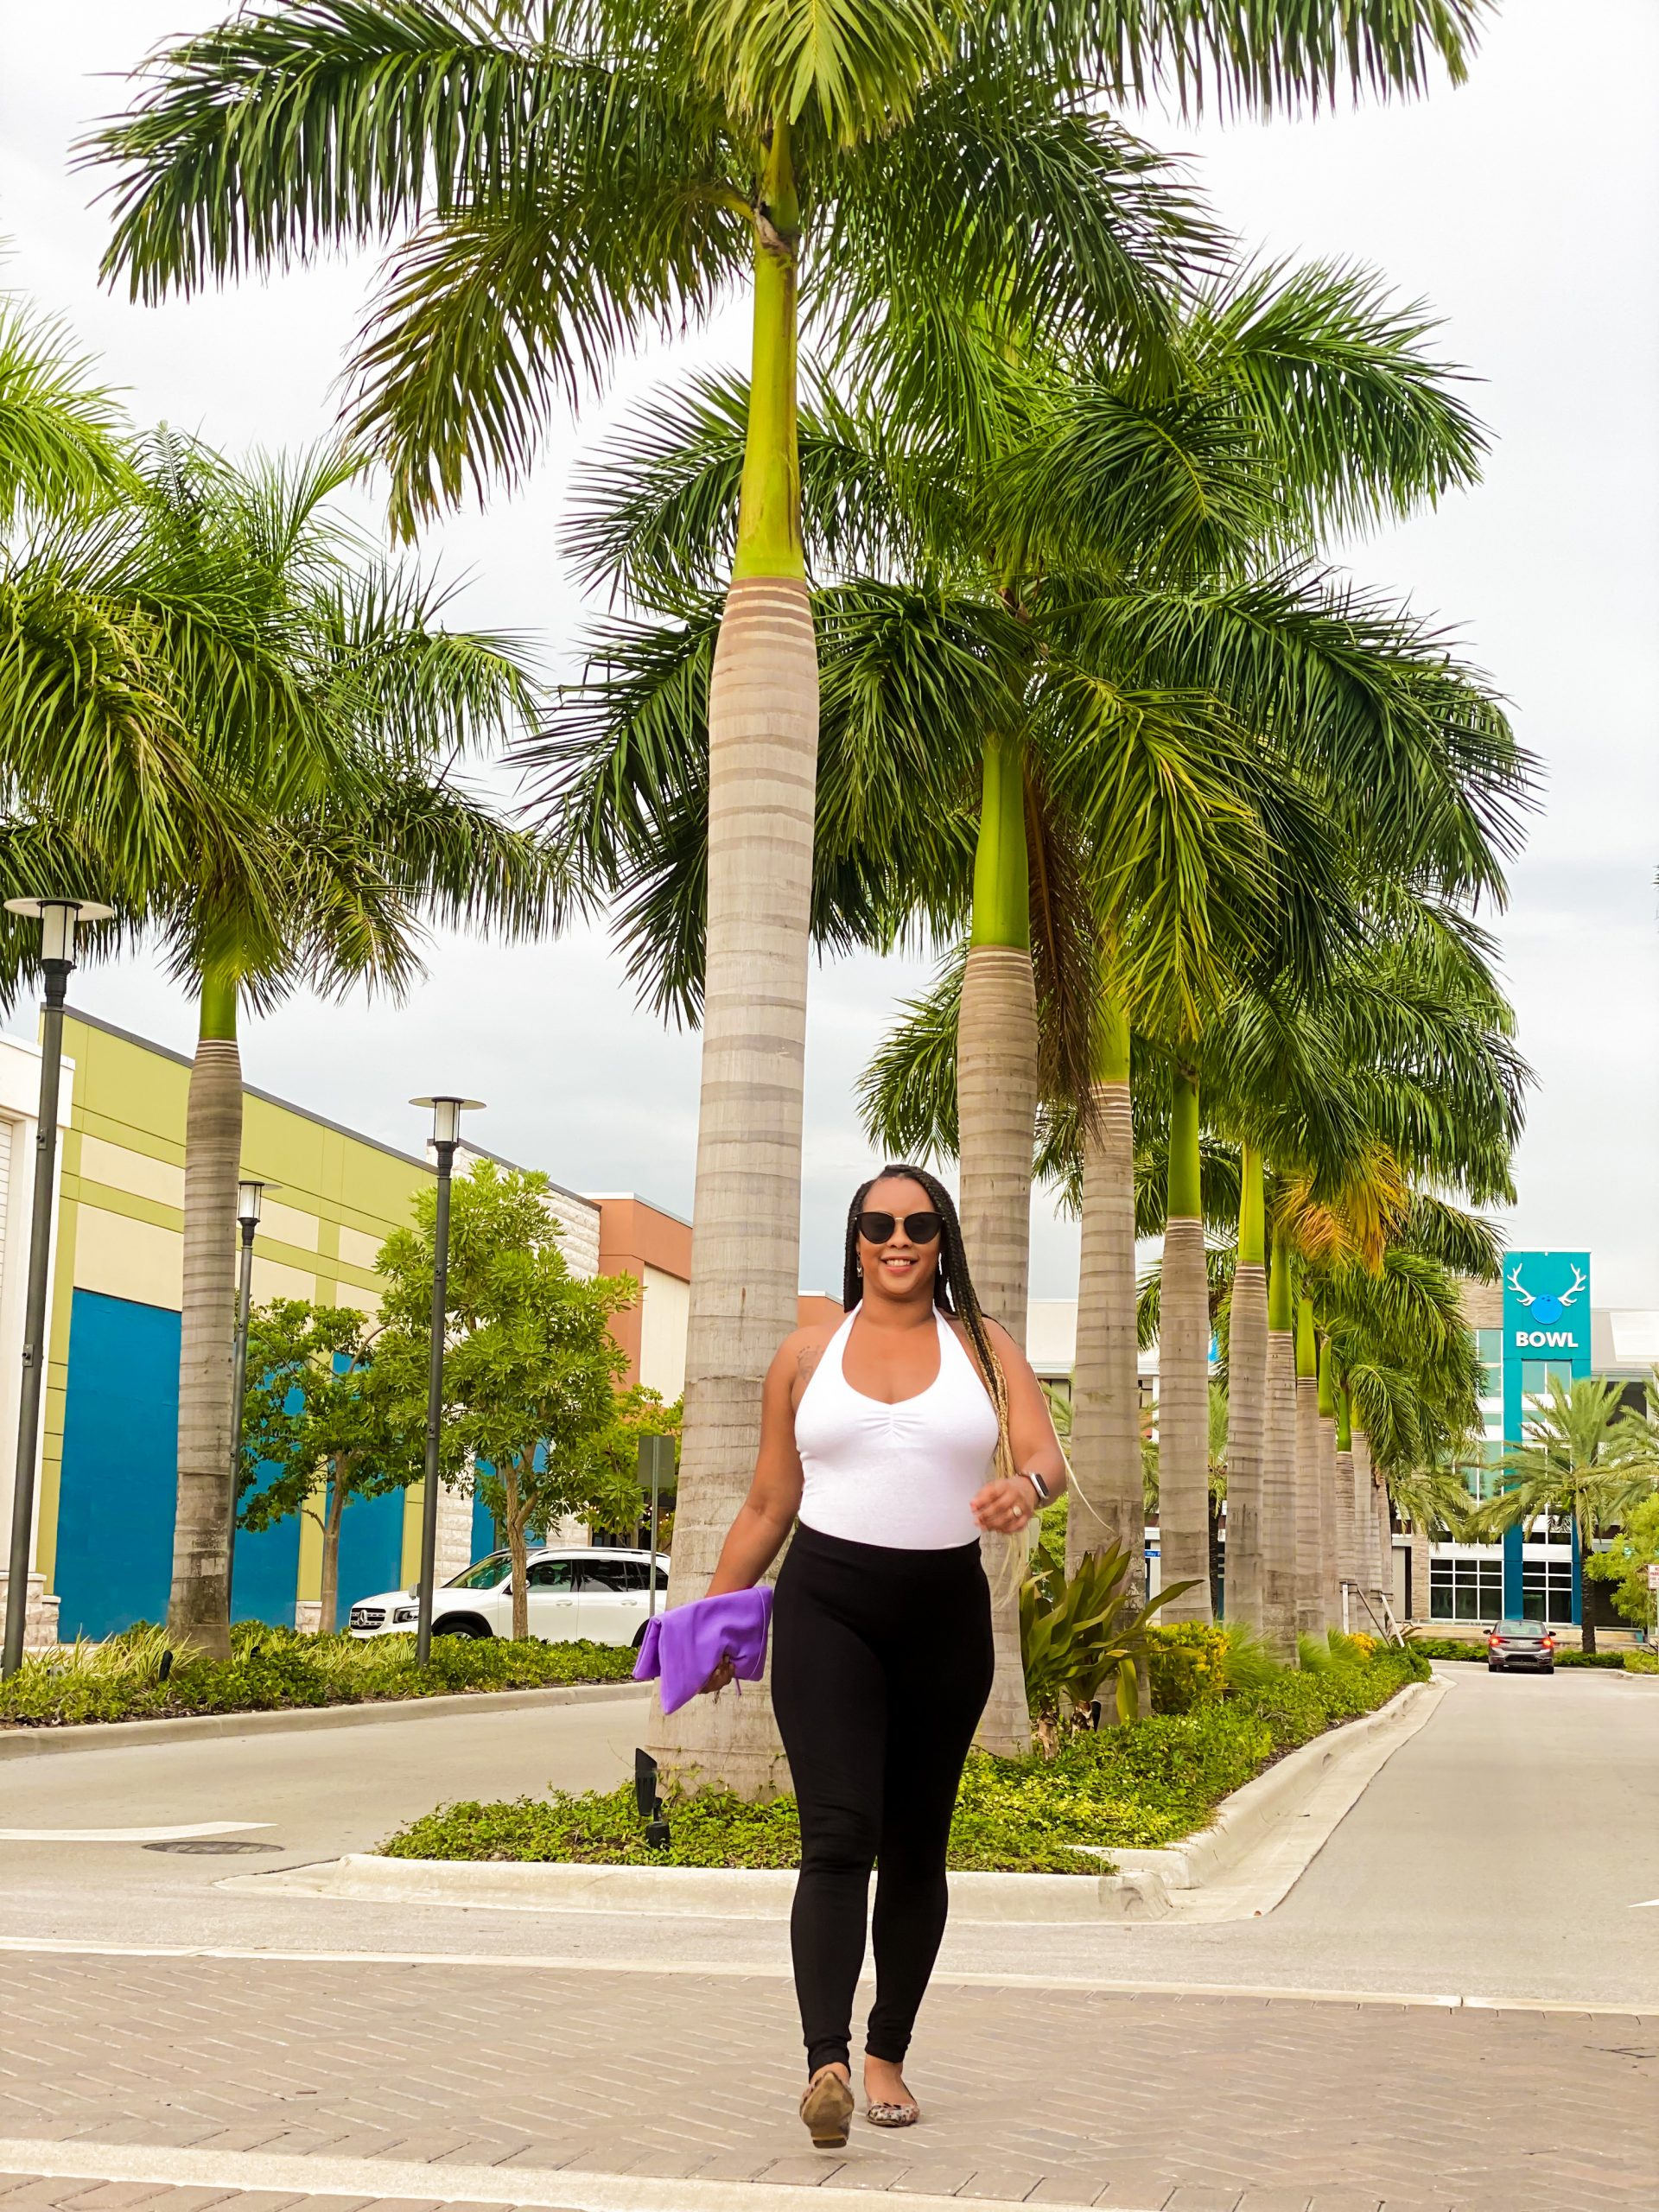 setitra standing in front of palm trees in street wearing black pants and a white halter top with black sunglasses on.